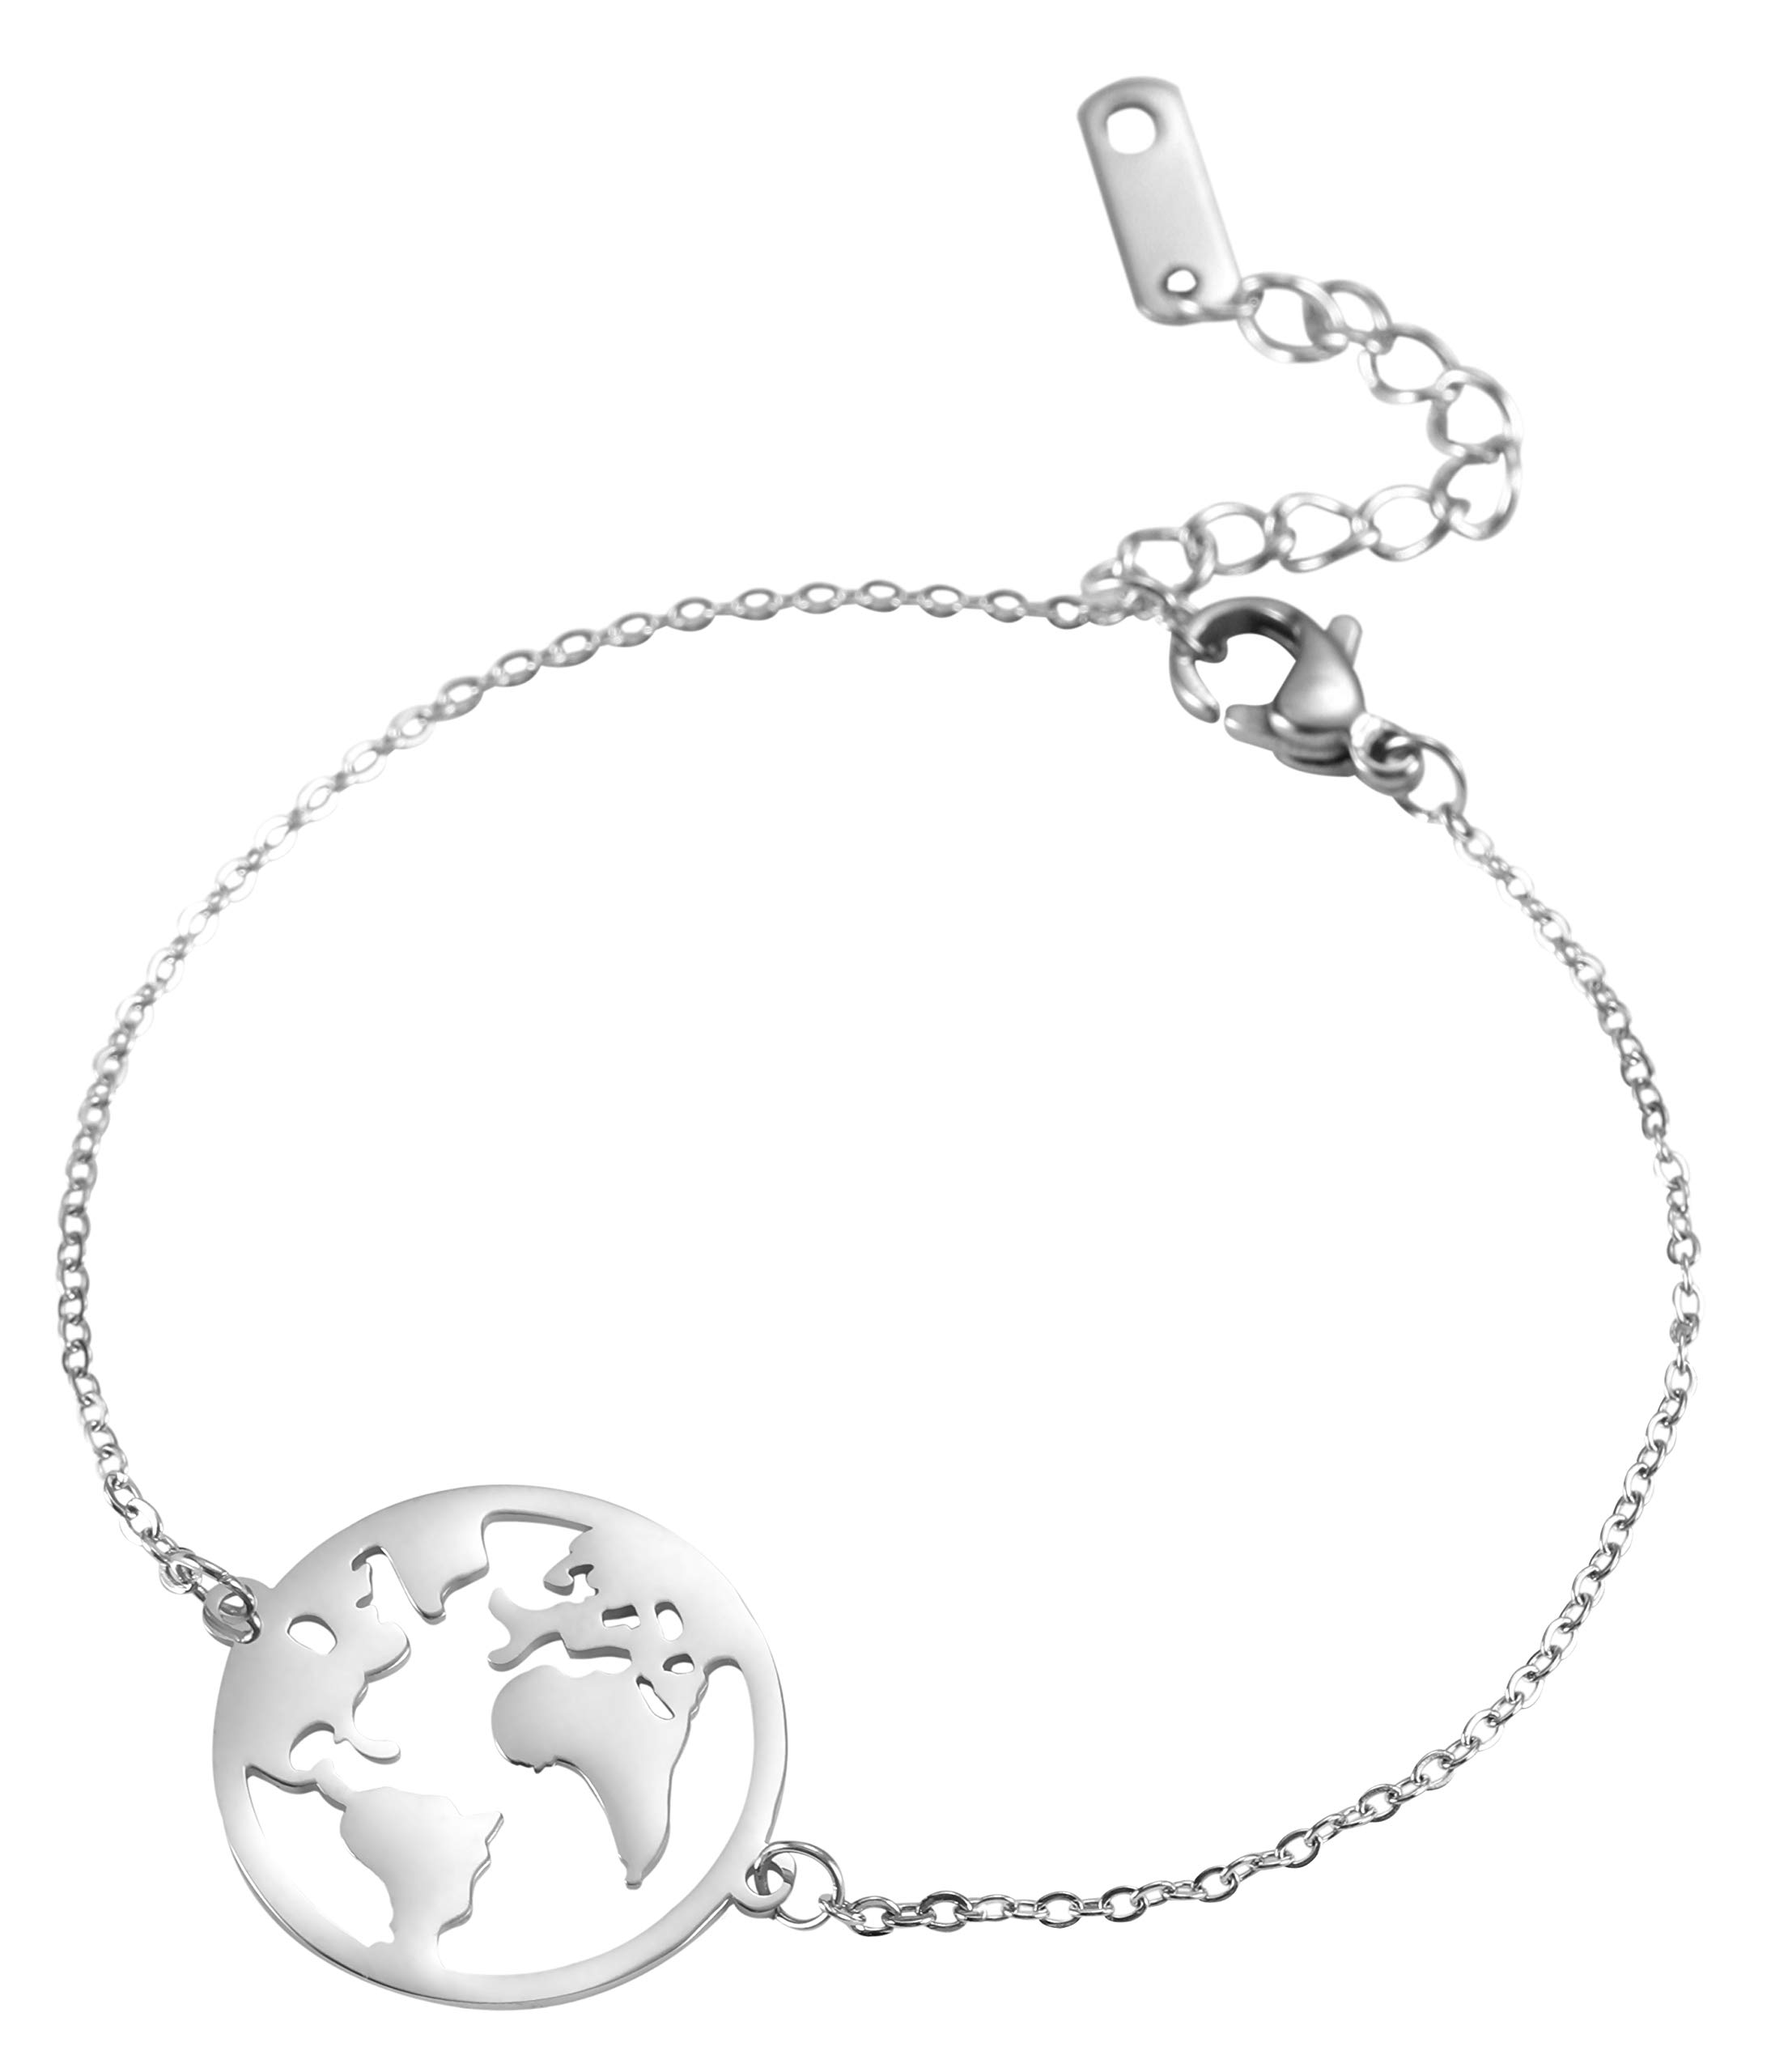 TEAMER Fashion World Map Charm Bracelet Stainless Steel Round Earth Hollow Out Simple Novelty Jewelry for Women Girls Men